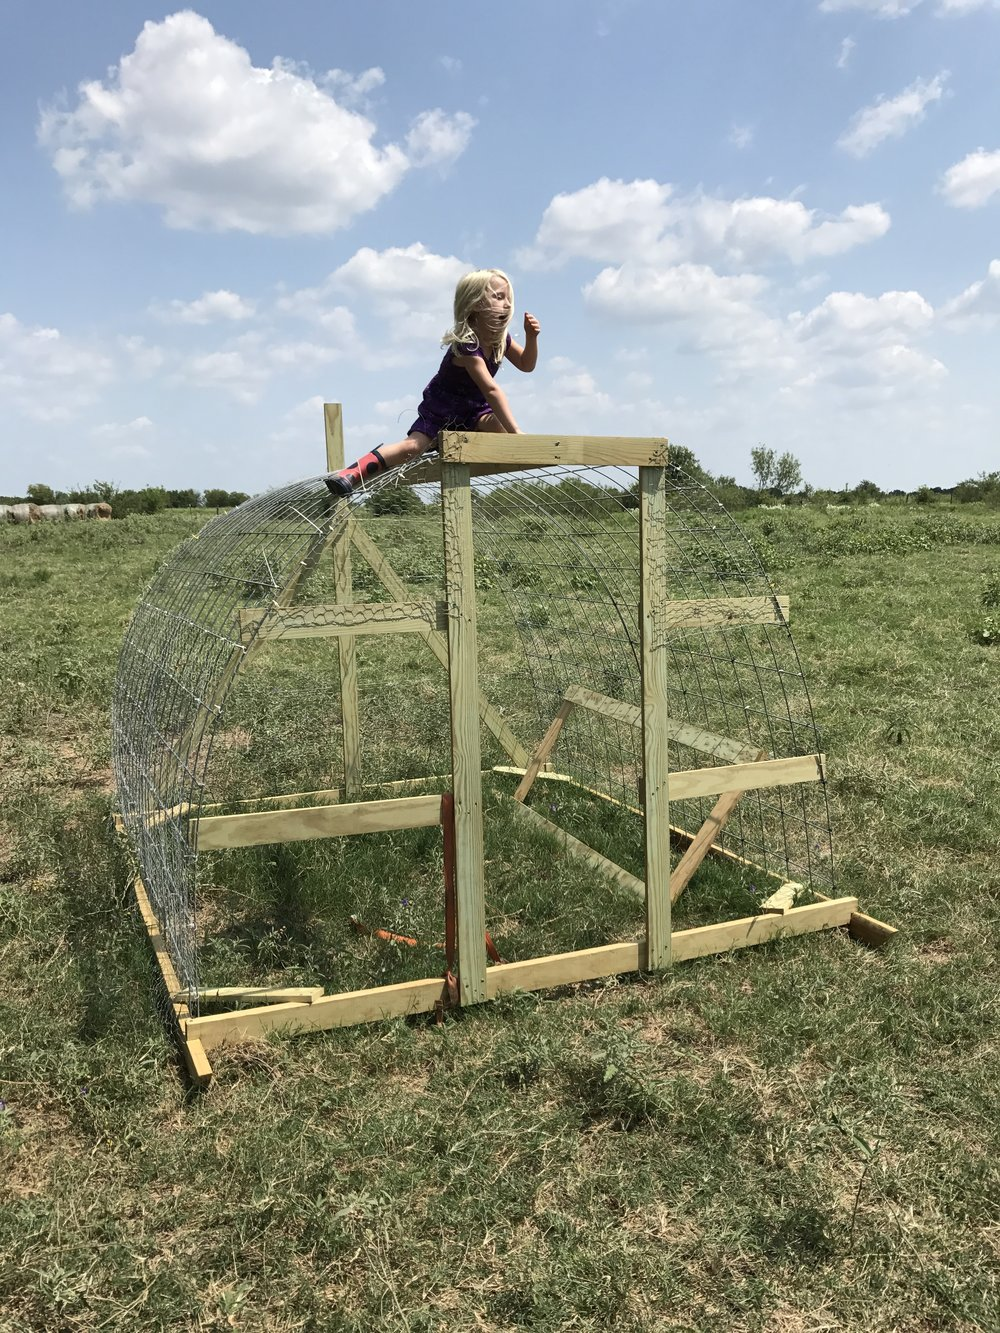 One of the hoop coops in progress - before the tarp and electric line were added. Strong enough to hold a wild child!